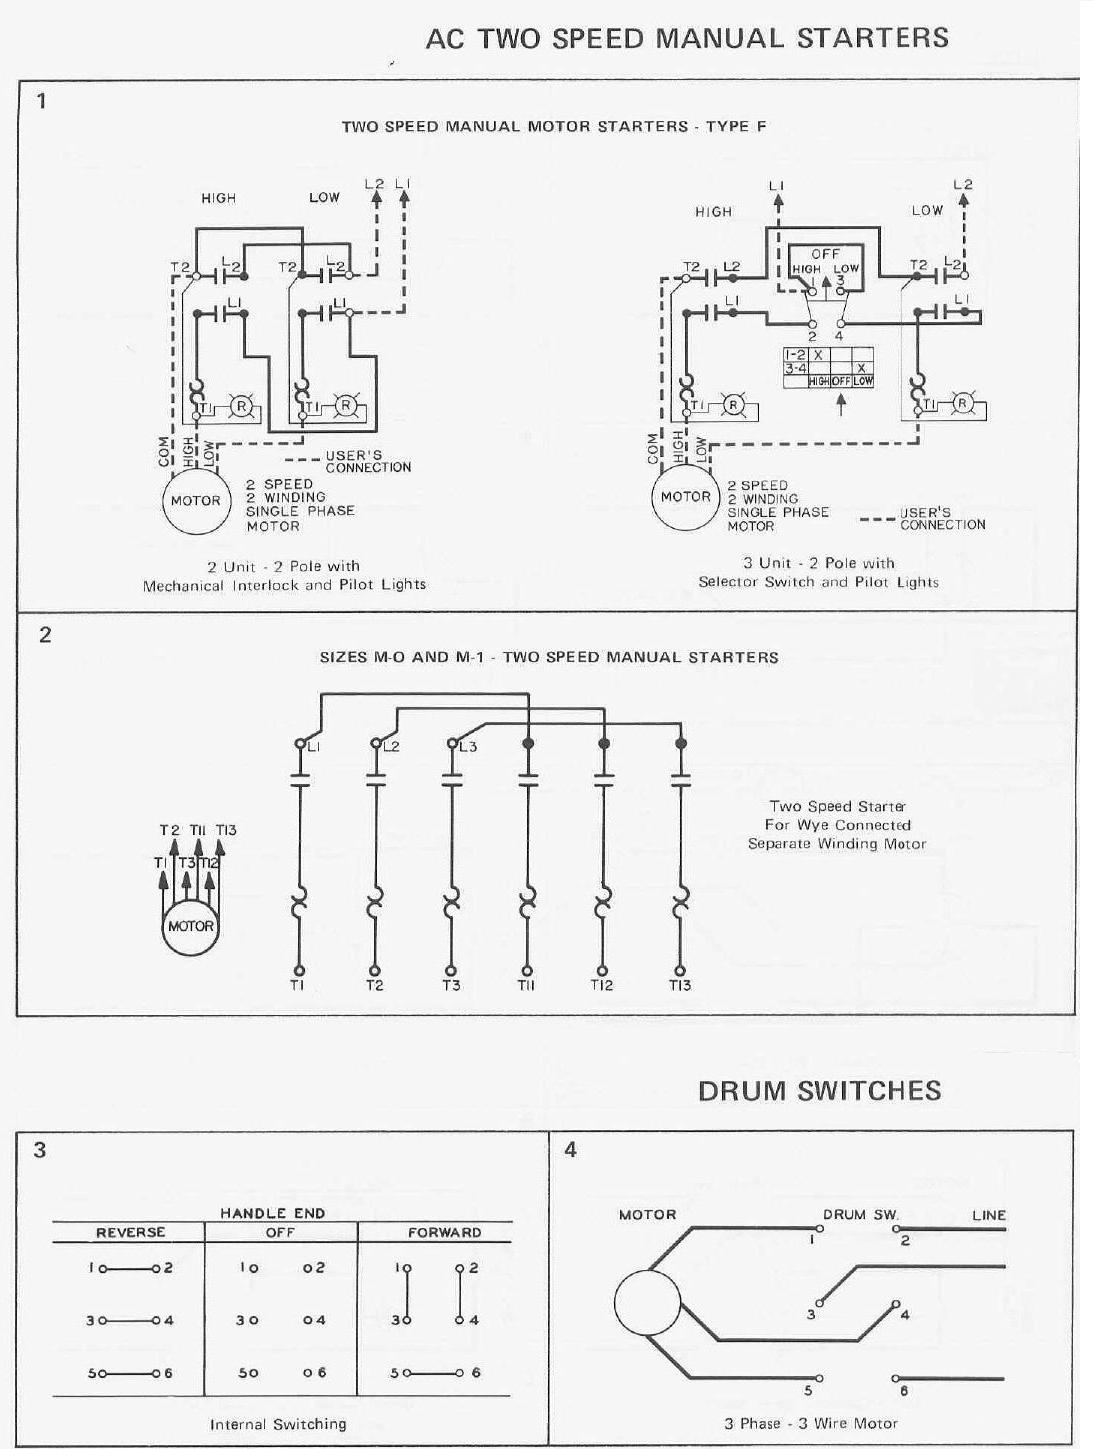 Ab Switch Wiring Diagram No Led Dpdt Audio T 3pdt Fantastic Dayton Drum Network Graph Software Relay Rocker Lovely